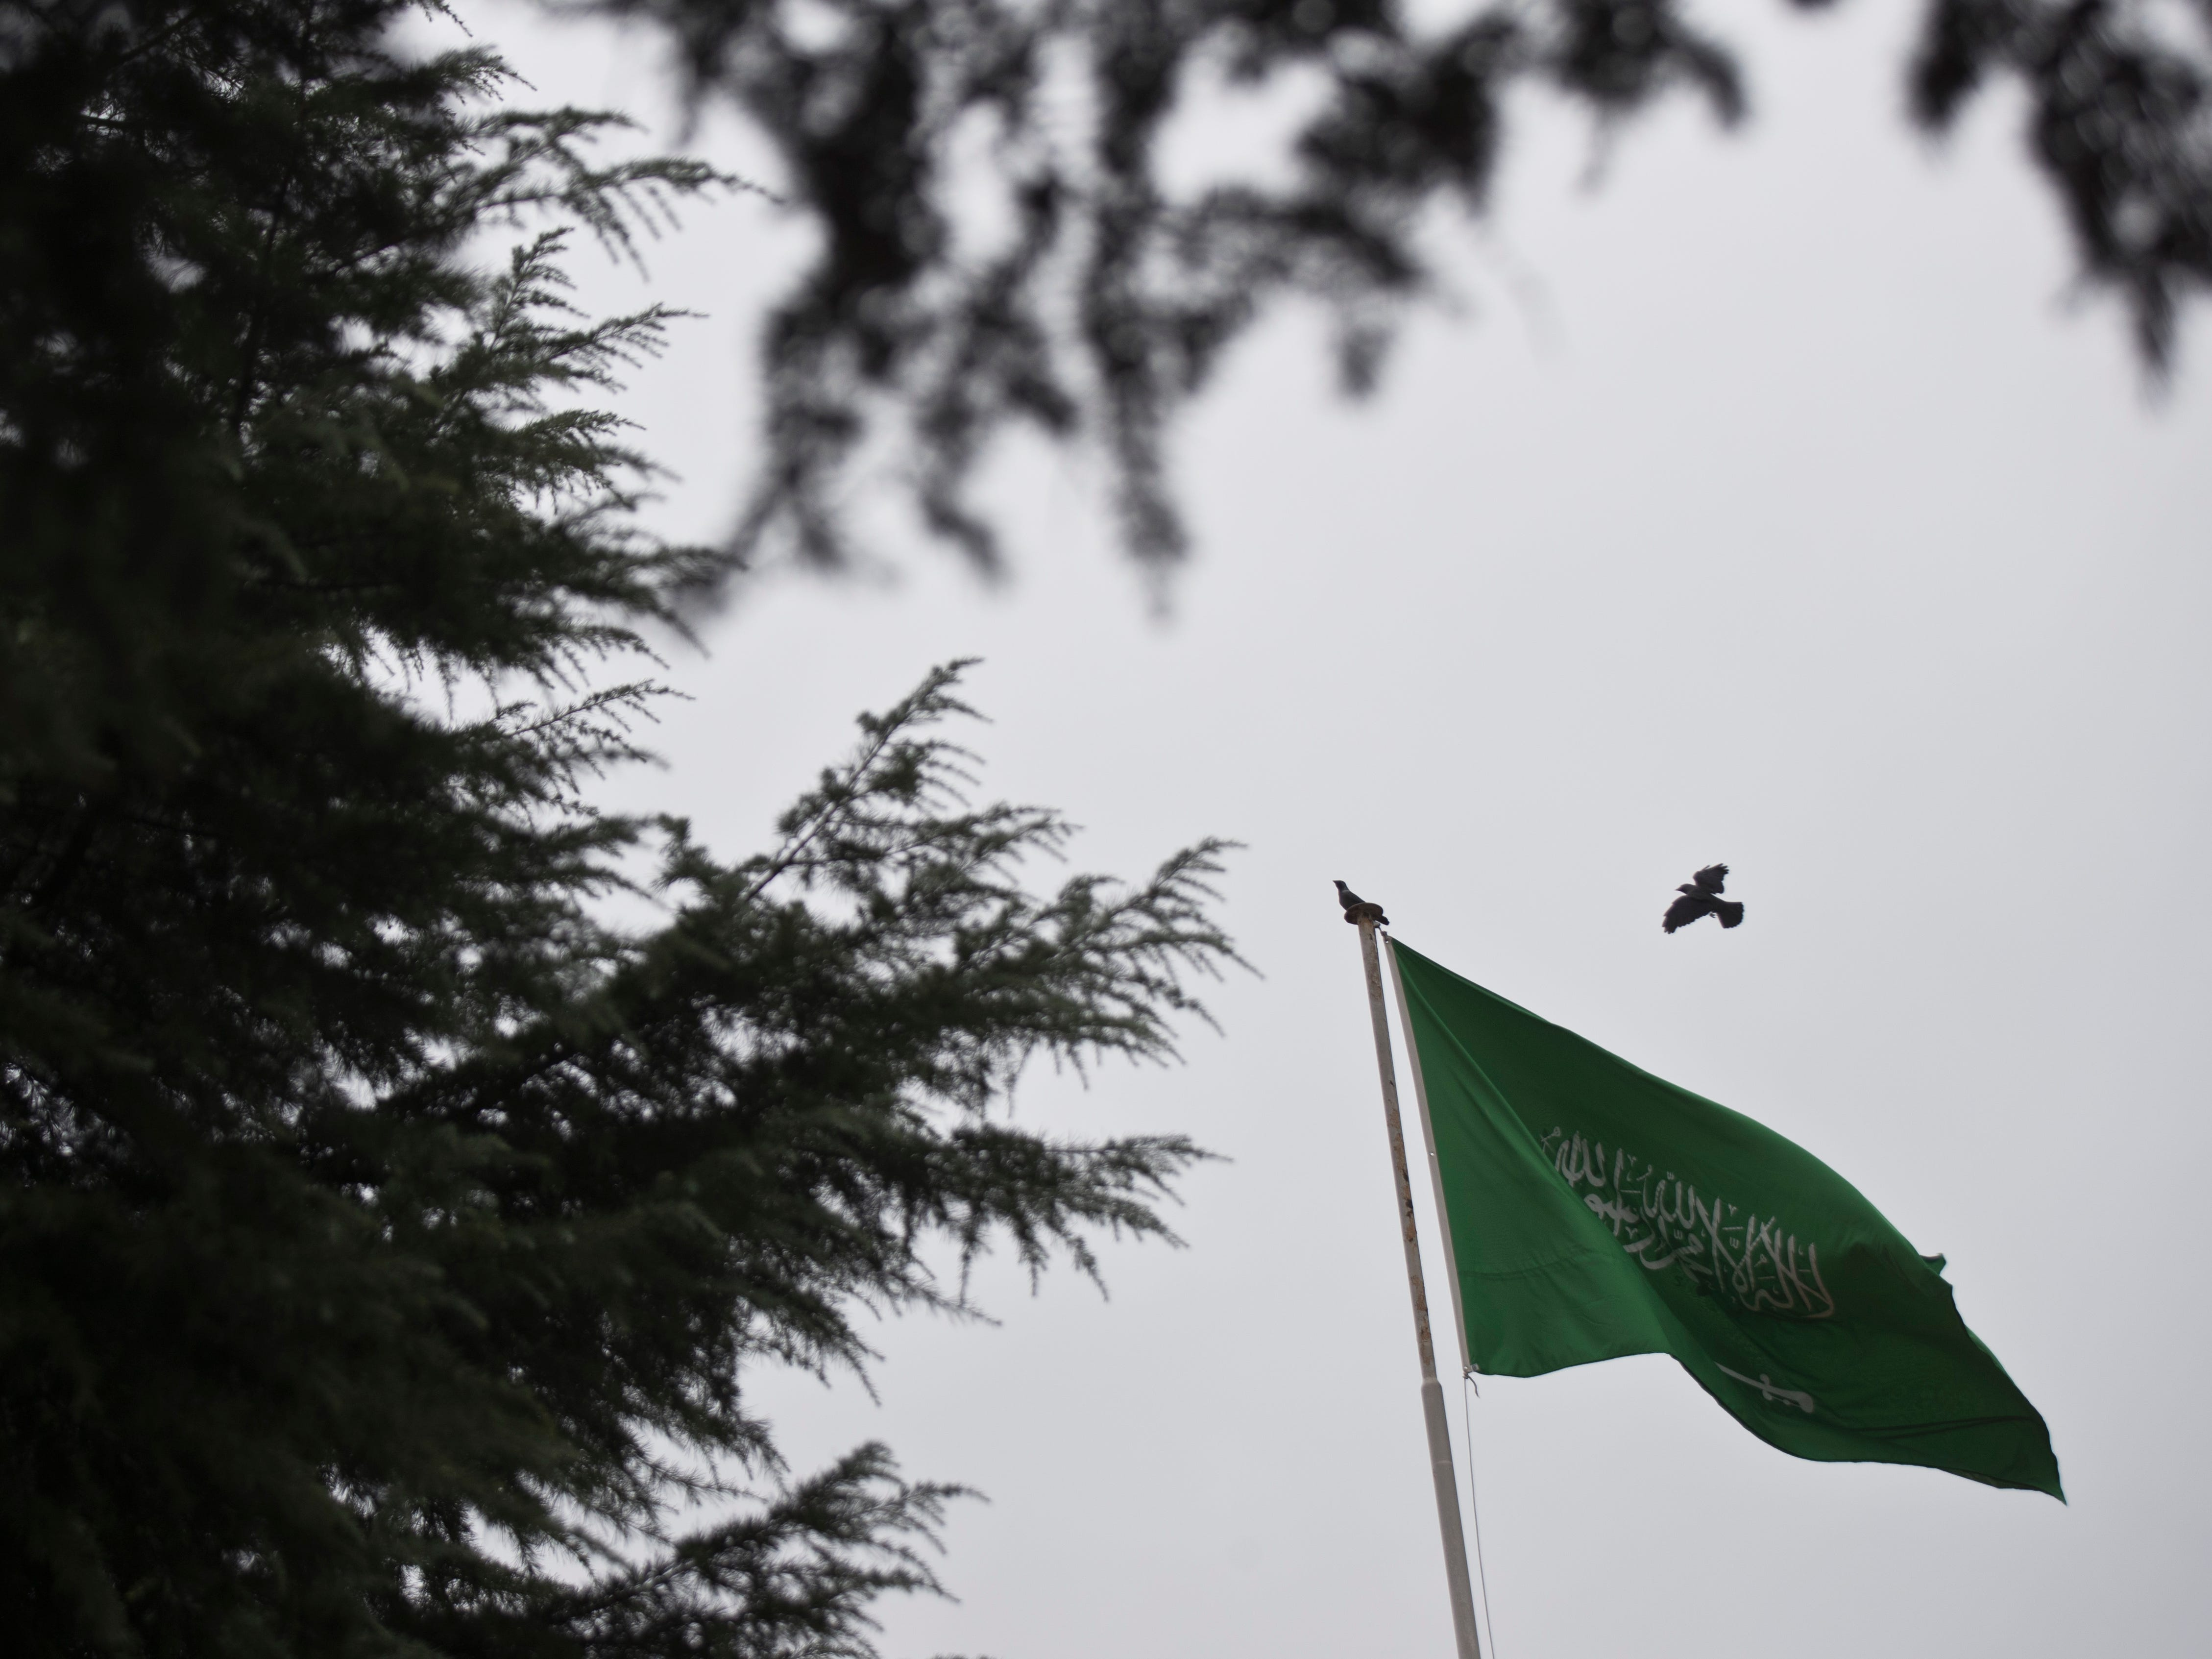 A bird flies next to Saudi Arabia's flag at the roof top of their consulate building in Istanbul, Sunday, Oct. 14, 2018. Veteran Saudi journalist Jamal Khashoggi disappeared over a week ago while on a visit to the Saudi Consulate in Istanbul, sparking an international uproar involving the kingdom, Turkey and the United States that remains unresolved.